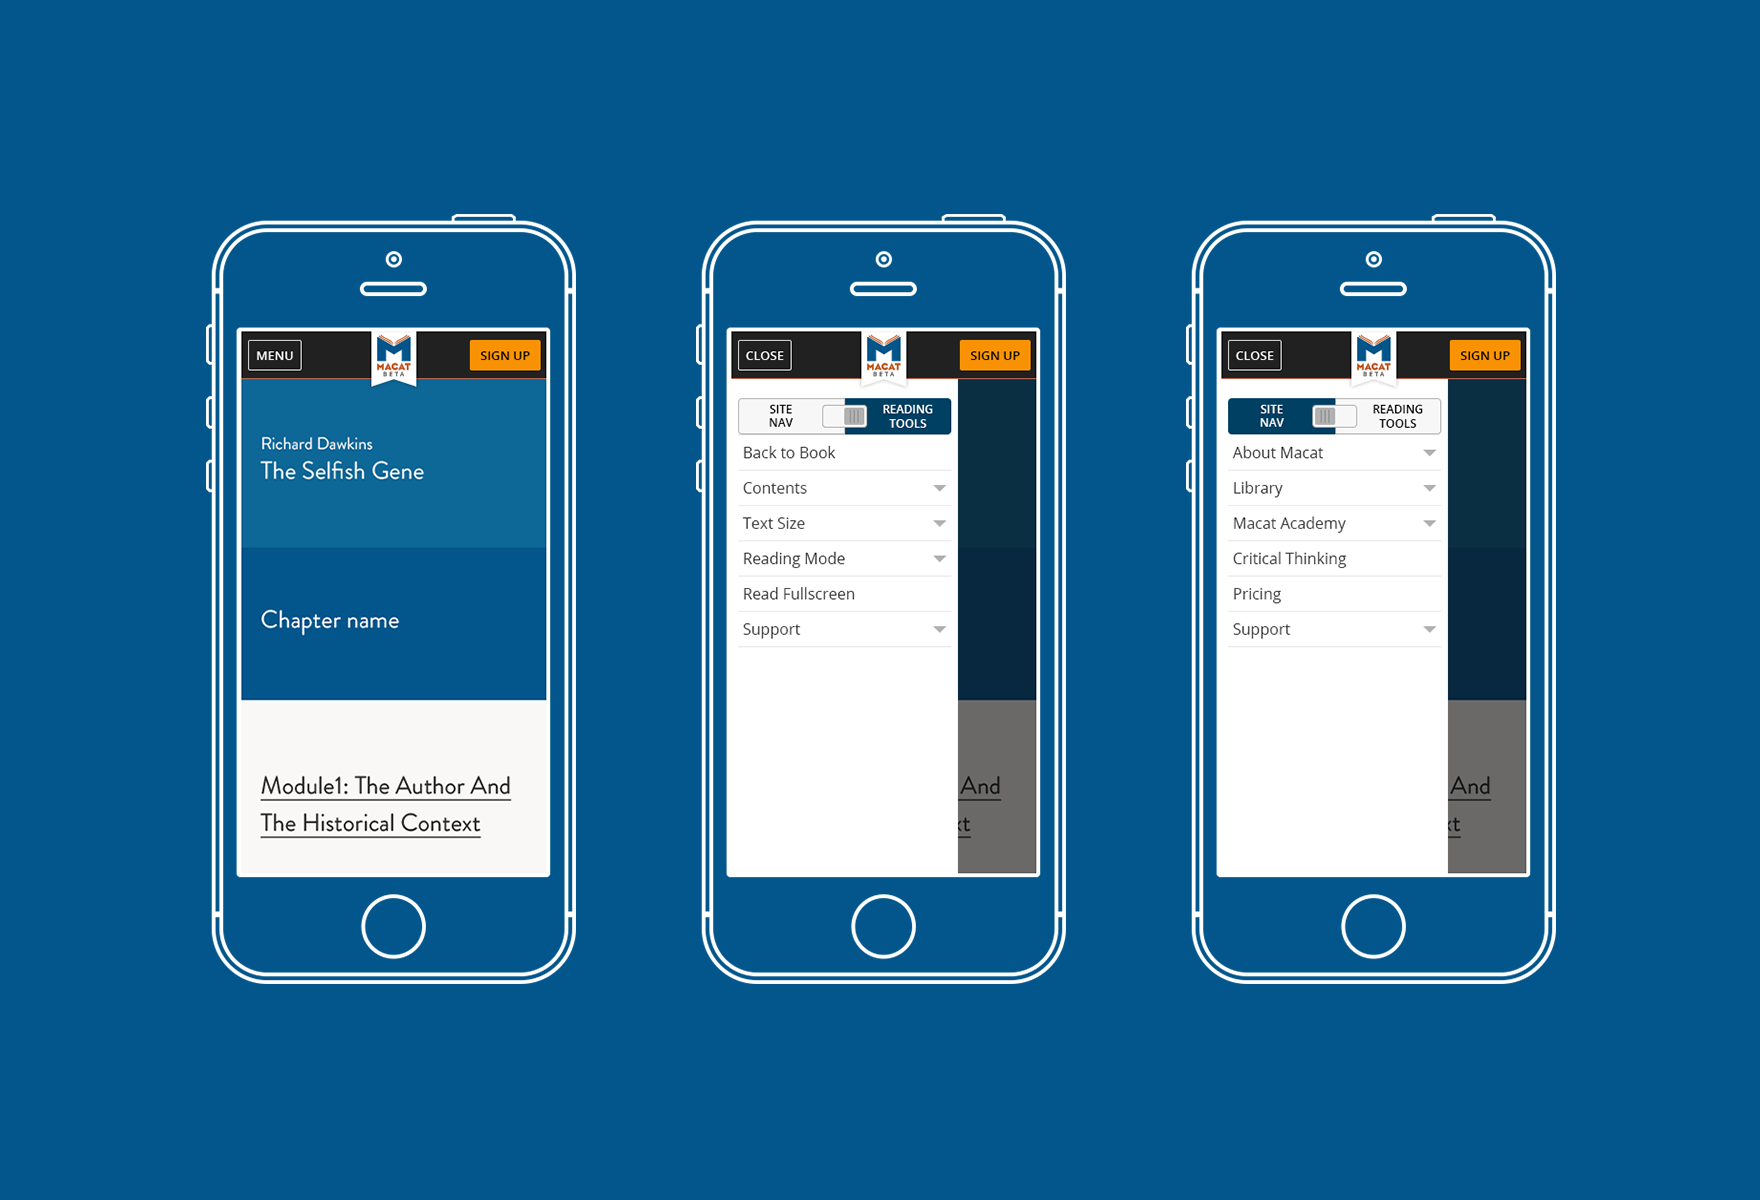 Designing the navigation for mobile and tablet was a tricky task as the user not only could navigate and edit settings for their reading experience but also navigate the site.